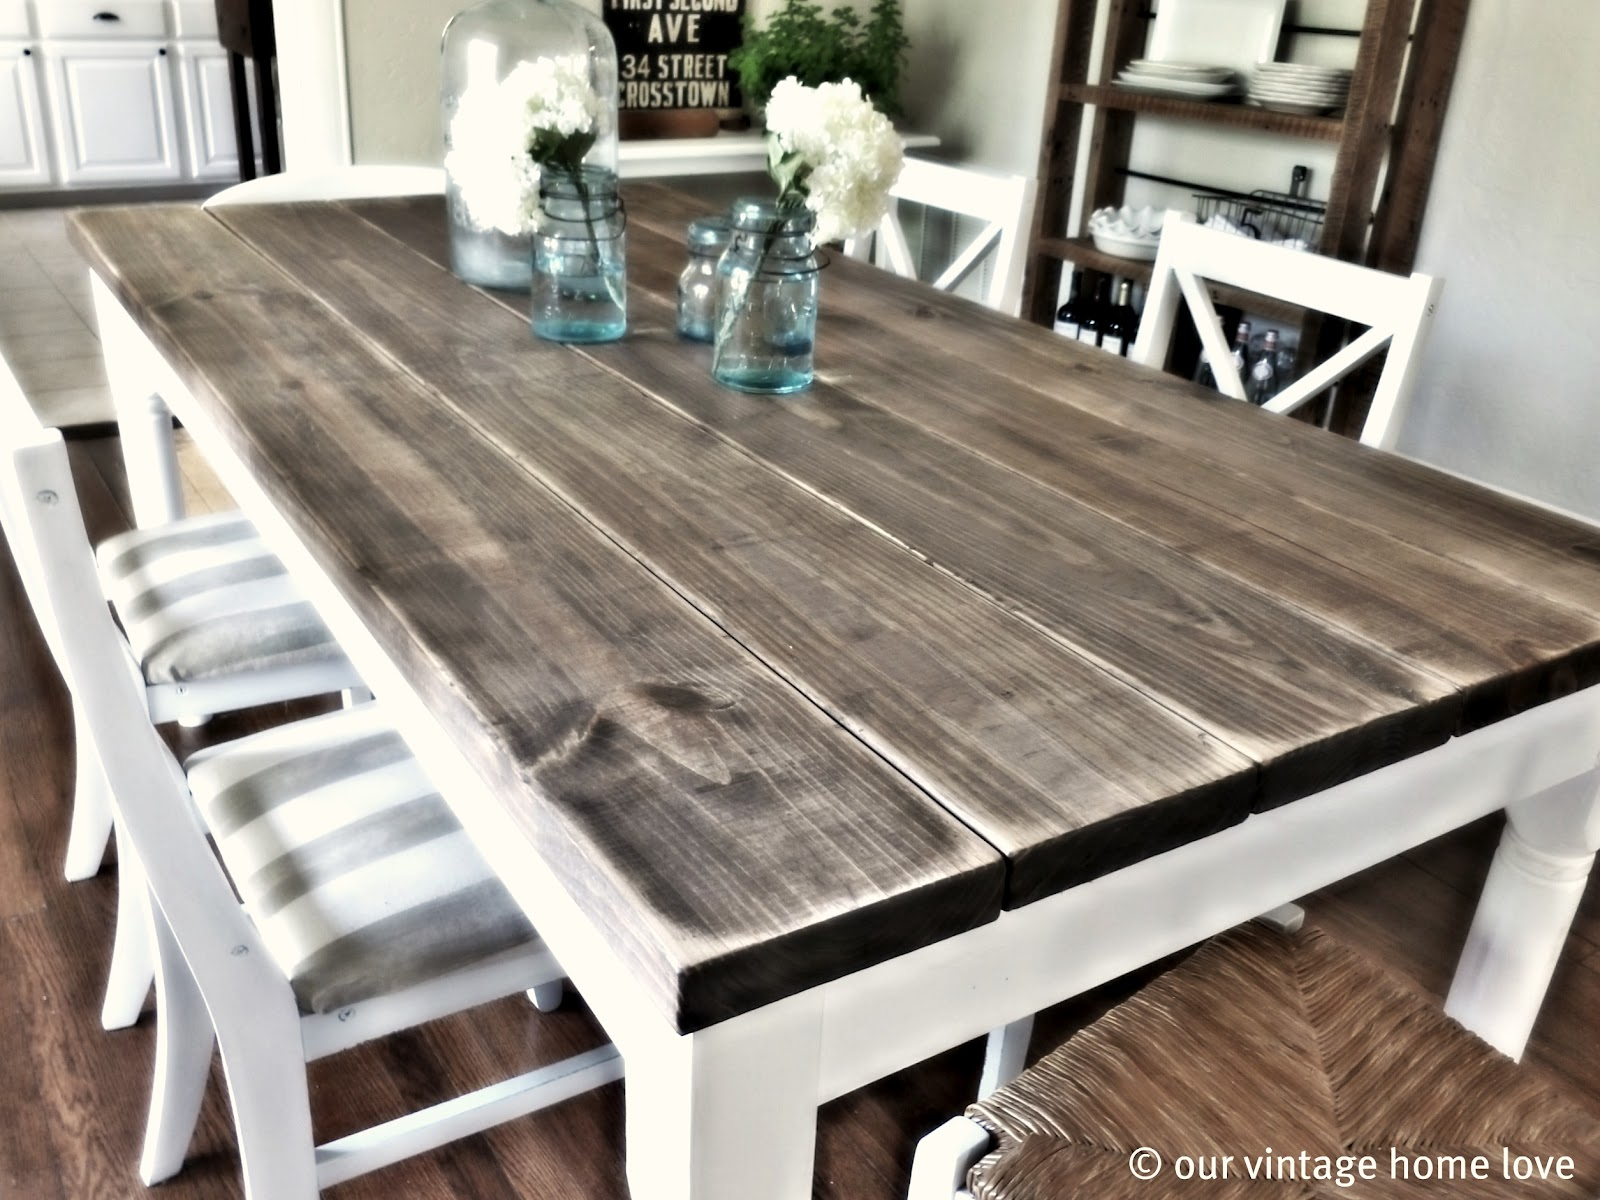 Antique farm dining table - Dining Room Table Tutorial